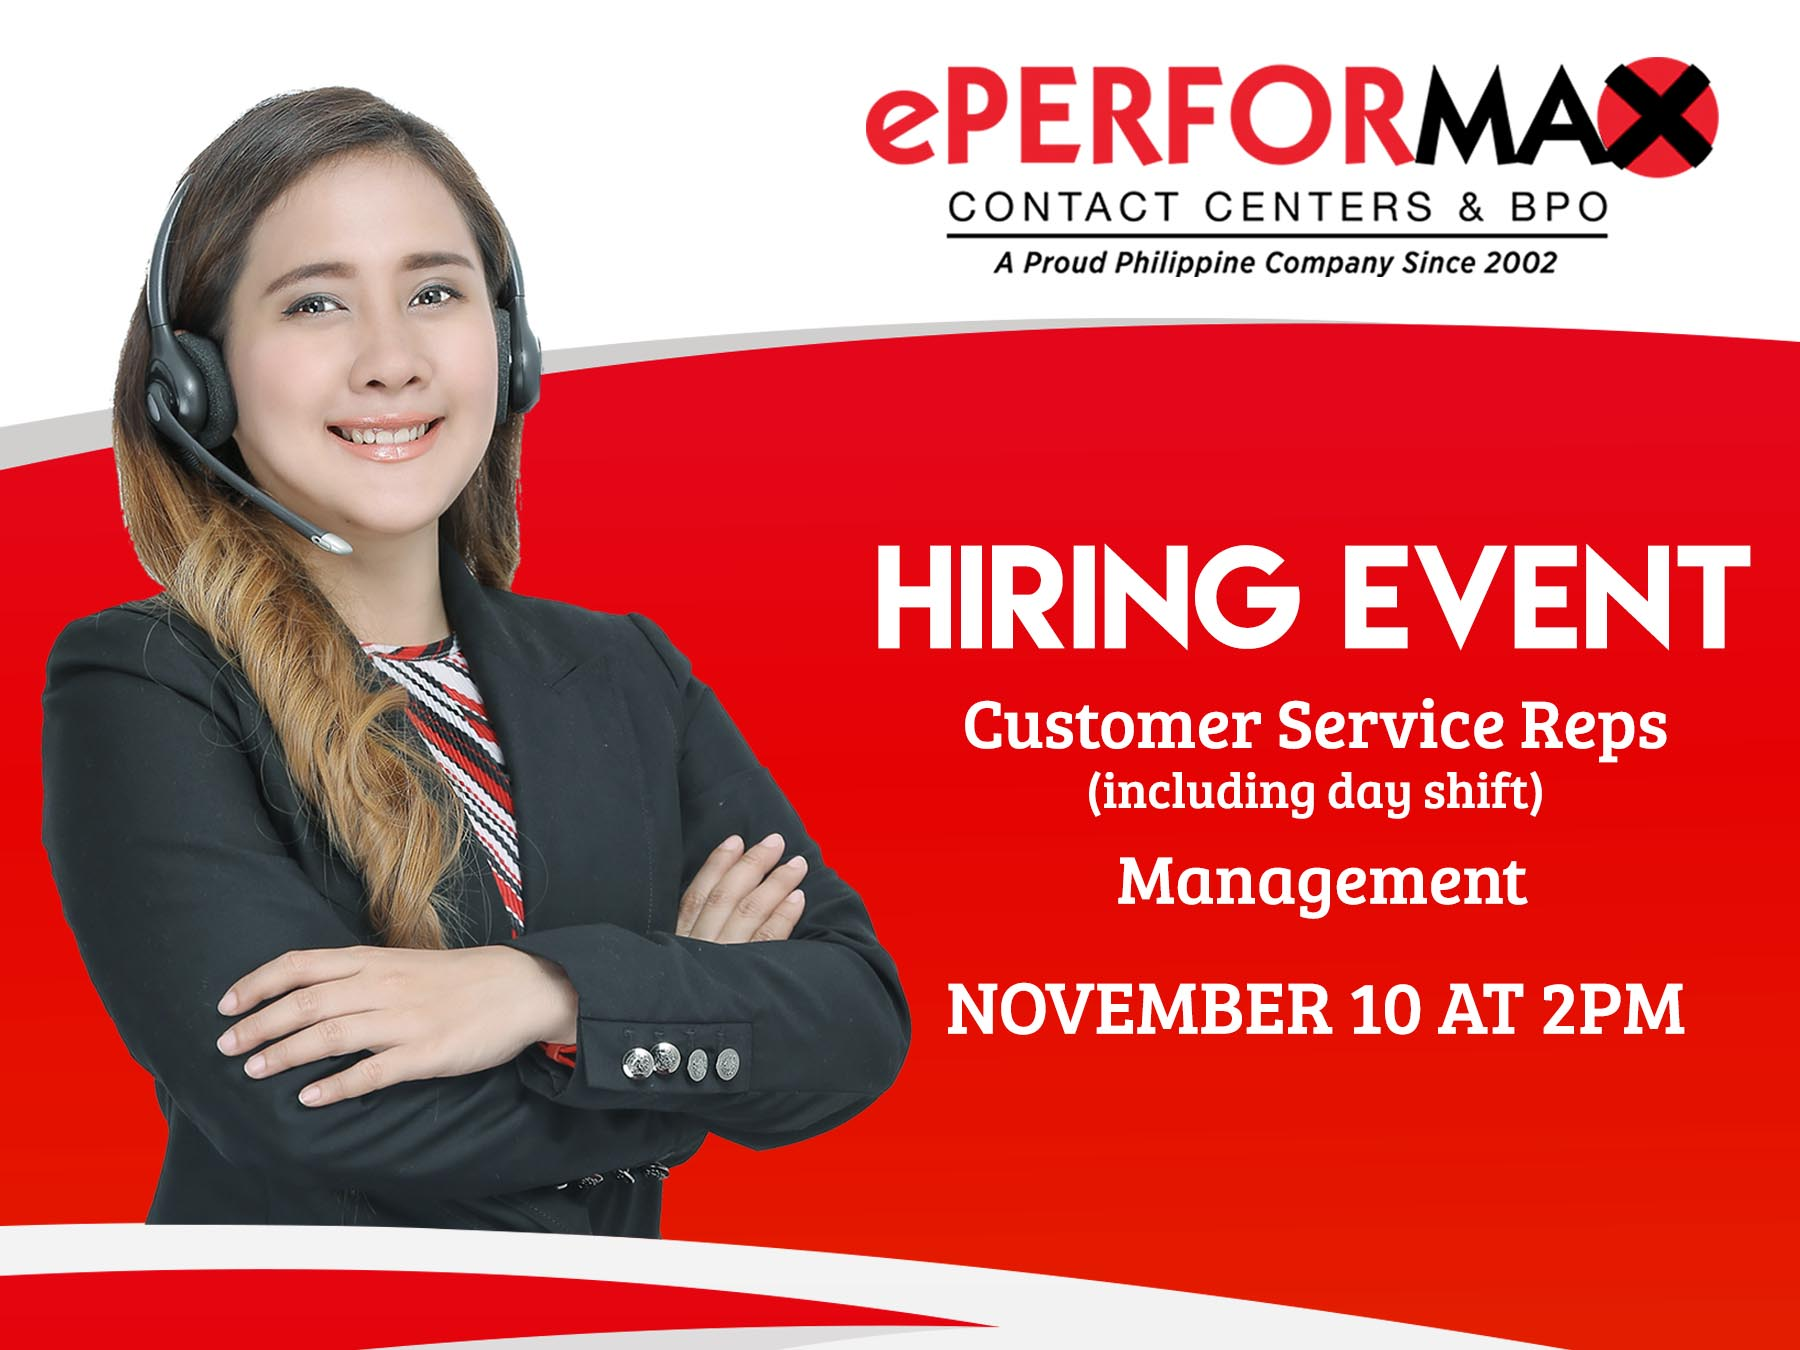 Call Center Agents from ePerformax Contact Centers & BPO